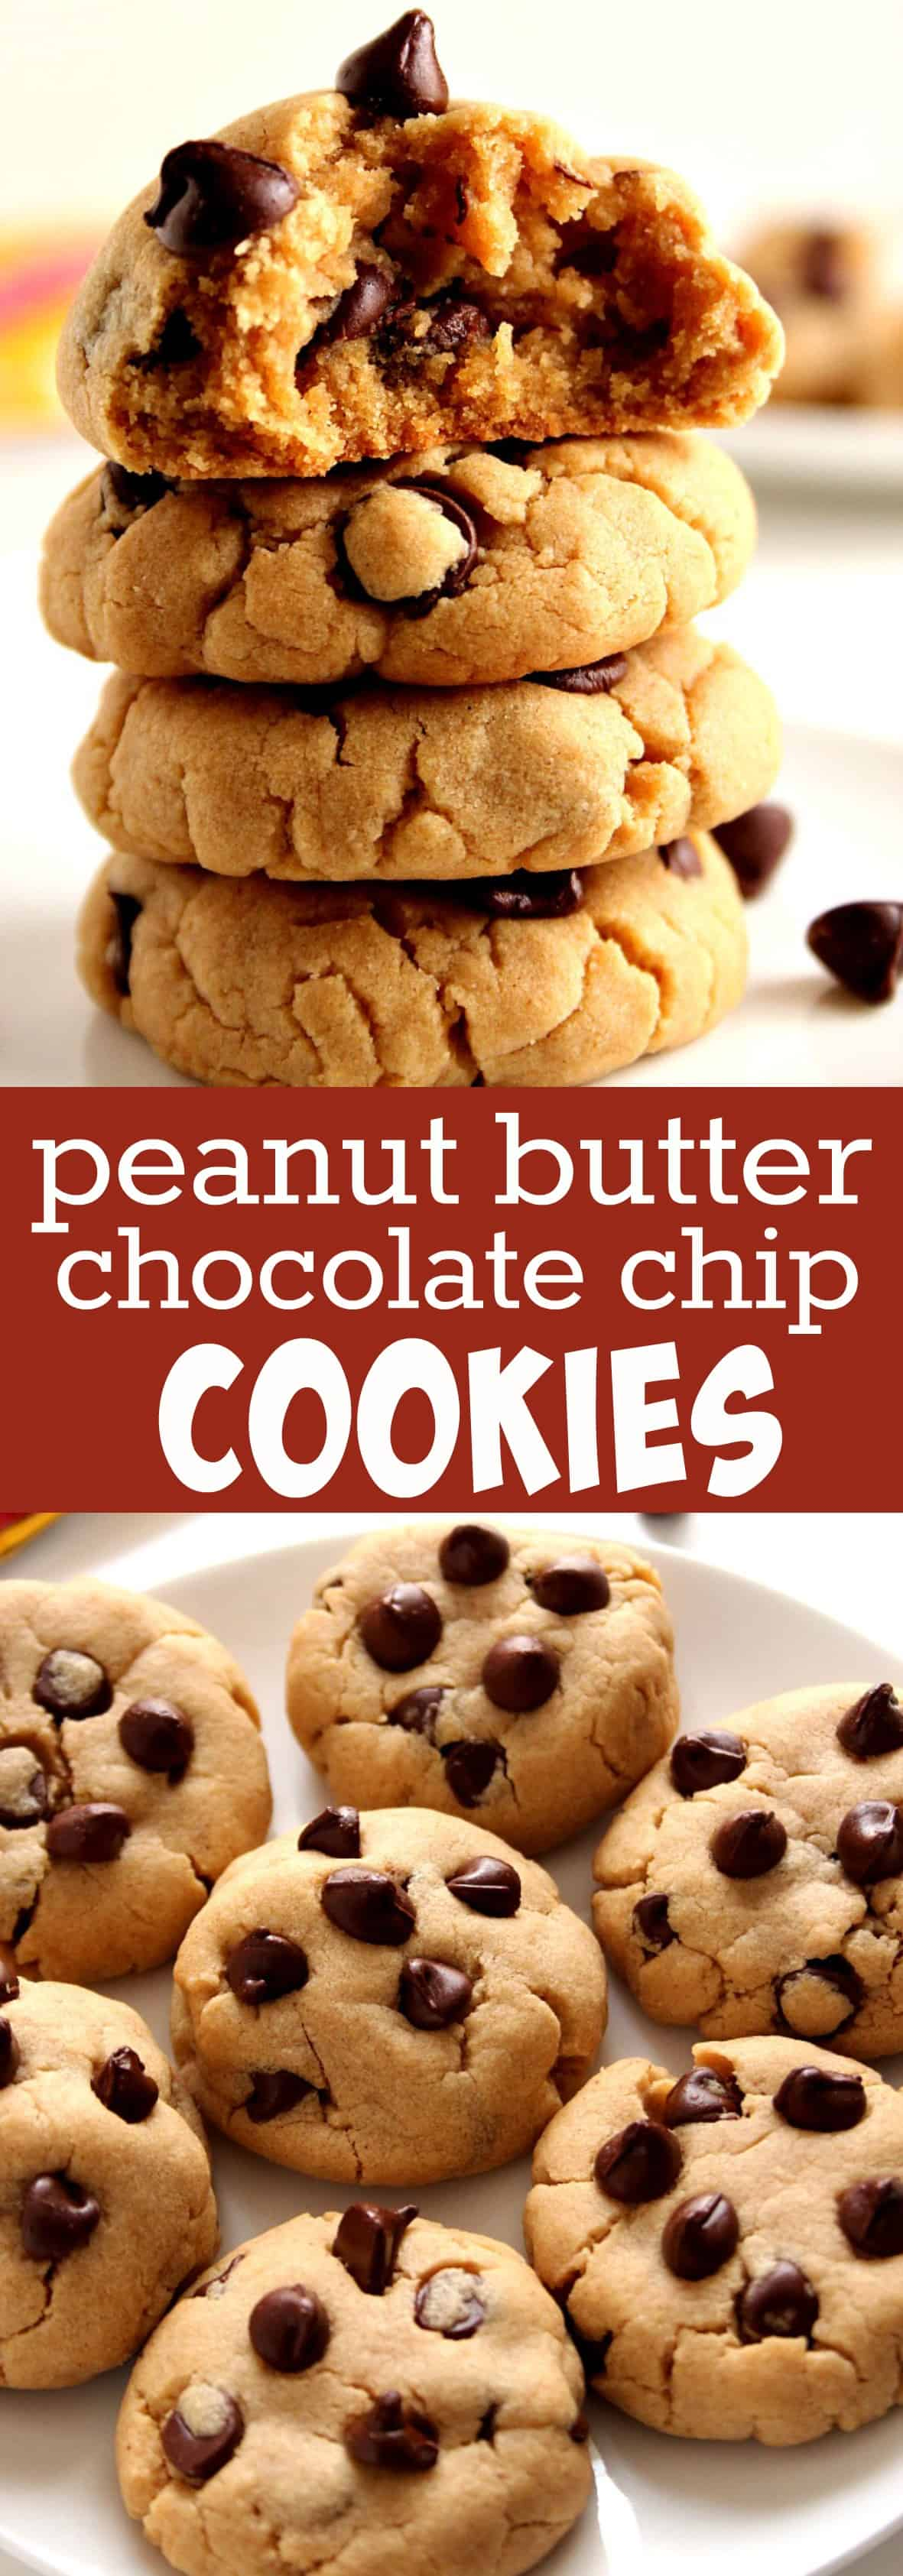 Peanut Butter Chocolate Chip Cookies Recipe - Crunchy ...